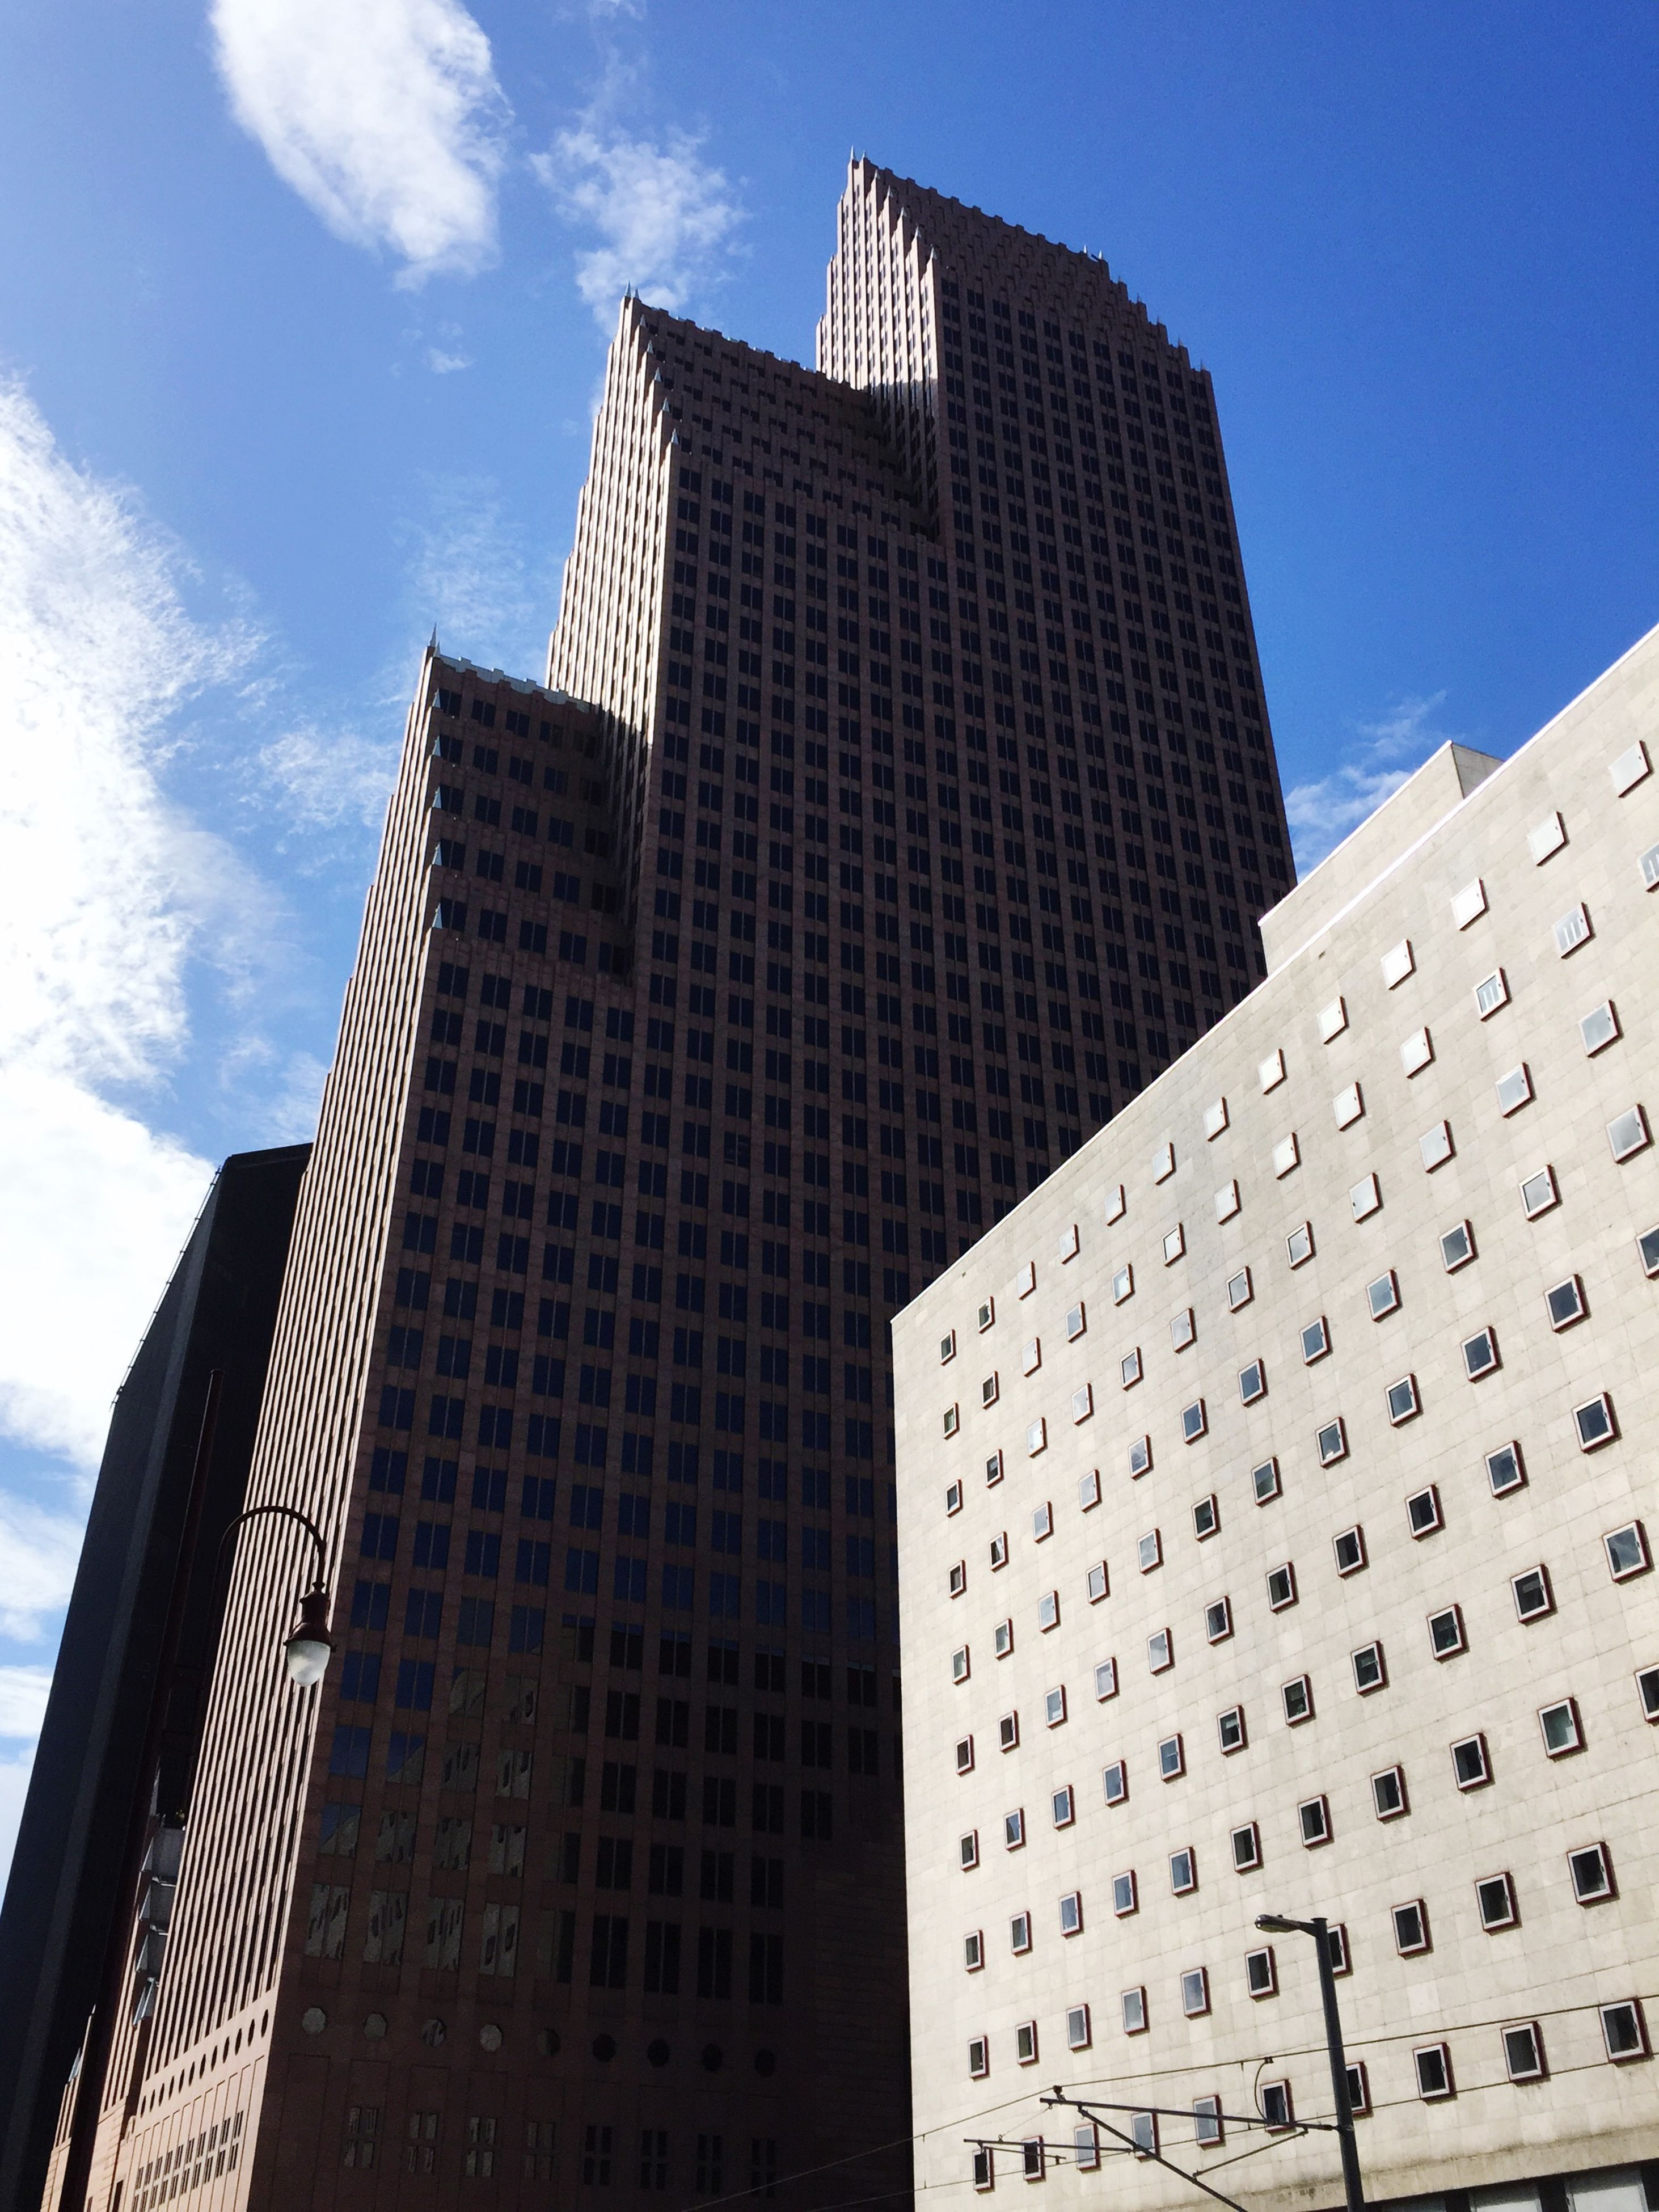 building exterior, architecture, built structure, skyscraper, city, modern, tall - high, office building, low angle view, tower, sky, building, day, blue, tall, outdoors, no people, city life, repetition, cloud - sky, cloud, development, sunny